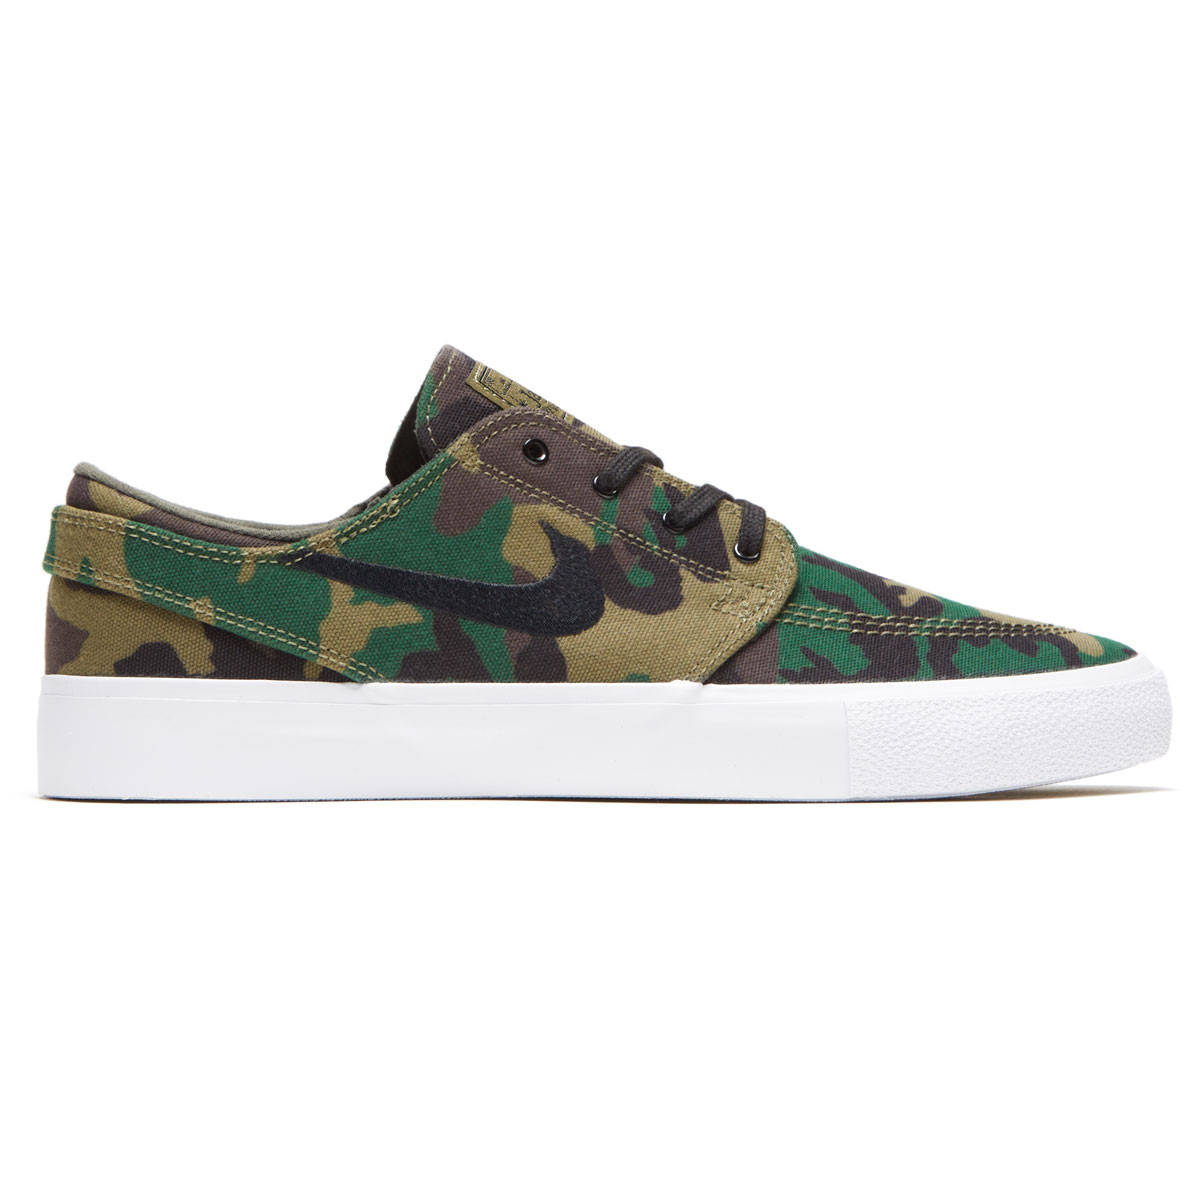 huge discount c2db3 75466 Nike SB Zoom Janoski Canvas RM Premium Shoes - Iguana Black Sequoia Gum